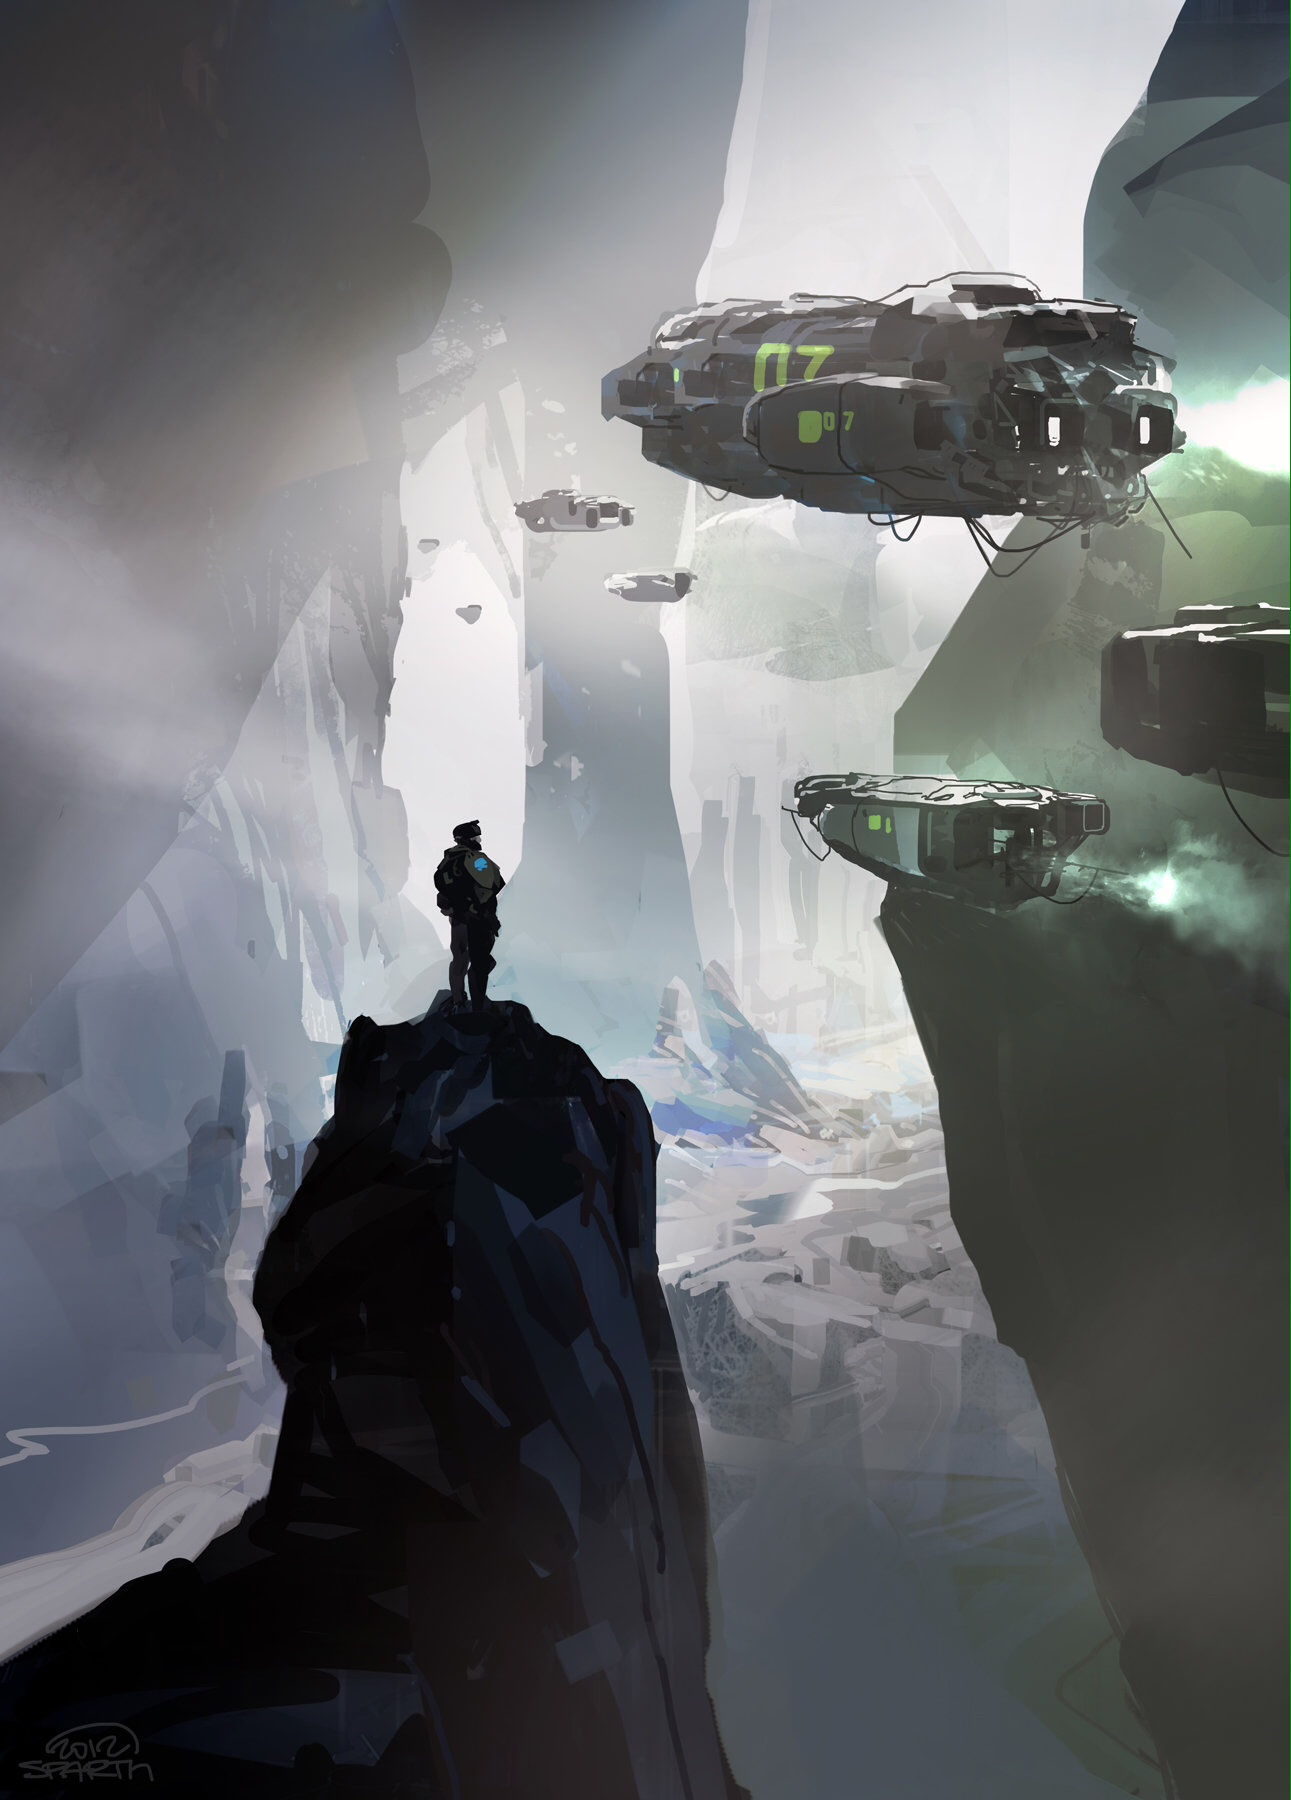 Sparth: The Astonishing Sci-Fi Works Of Sparth